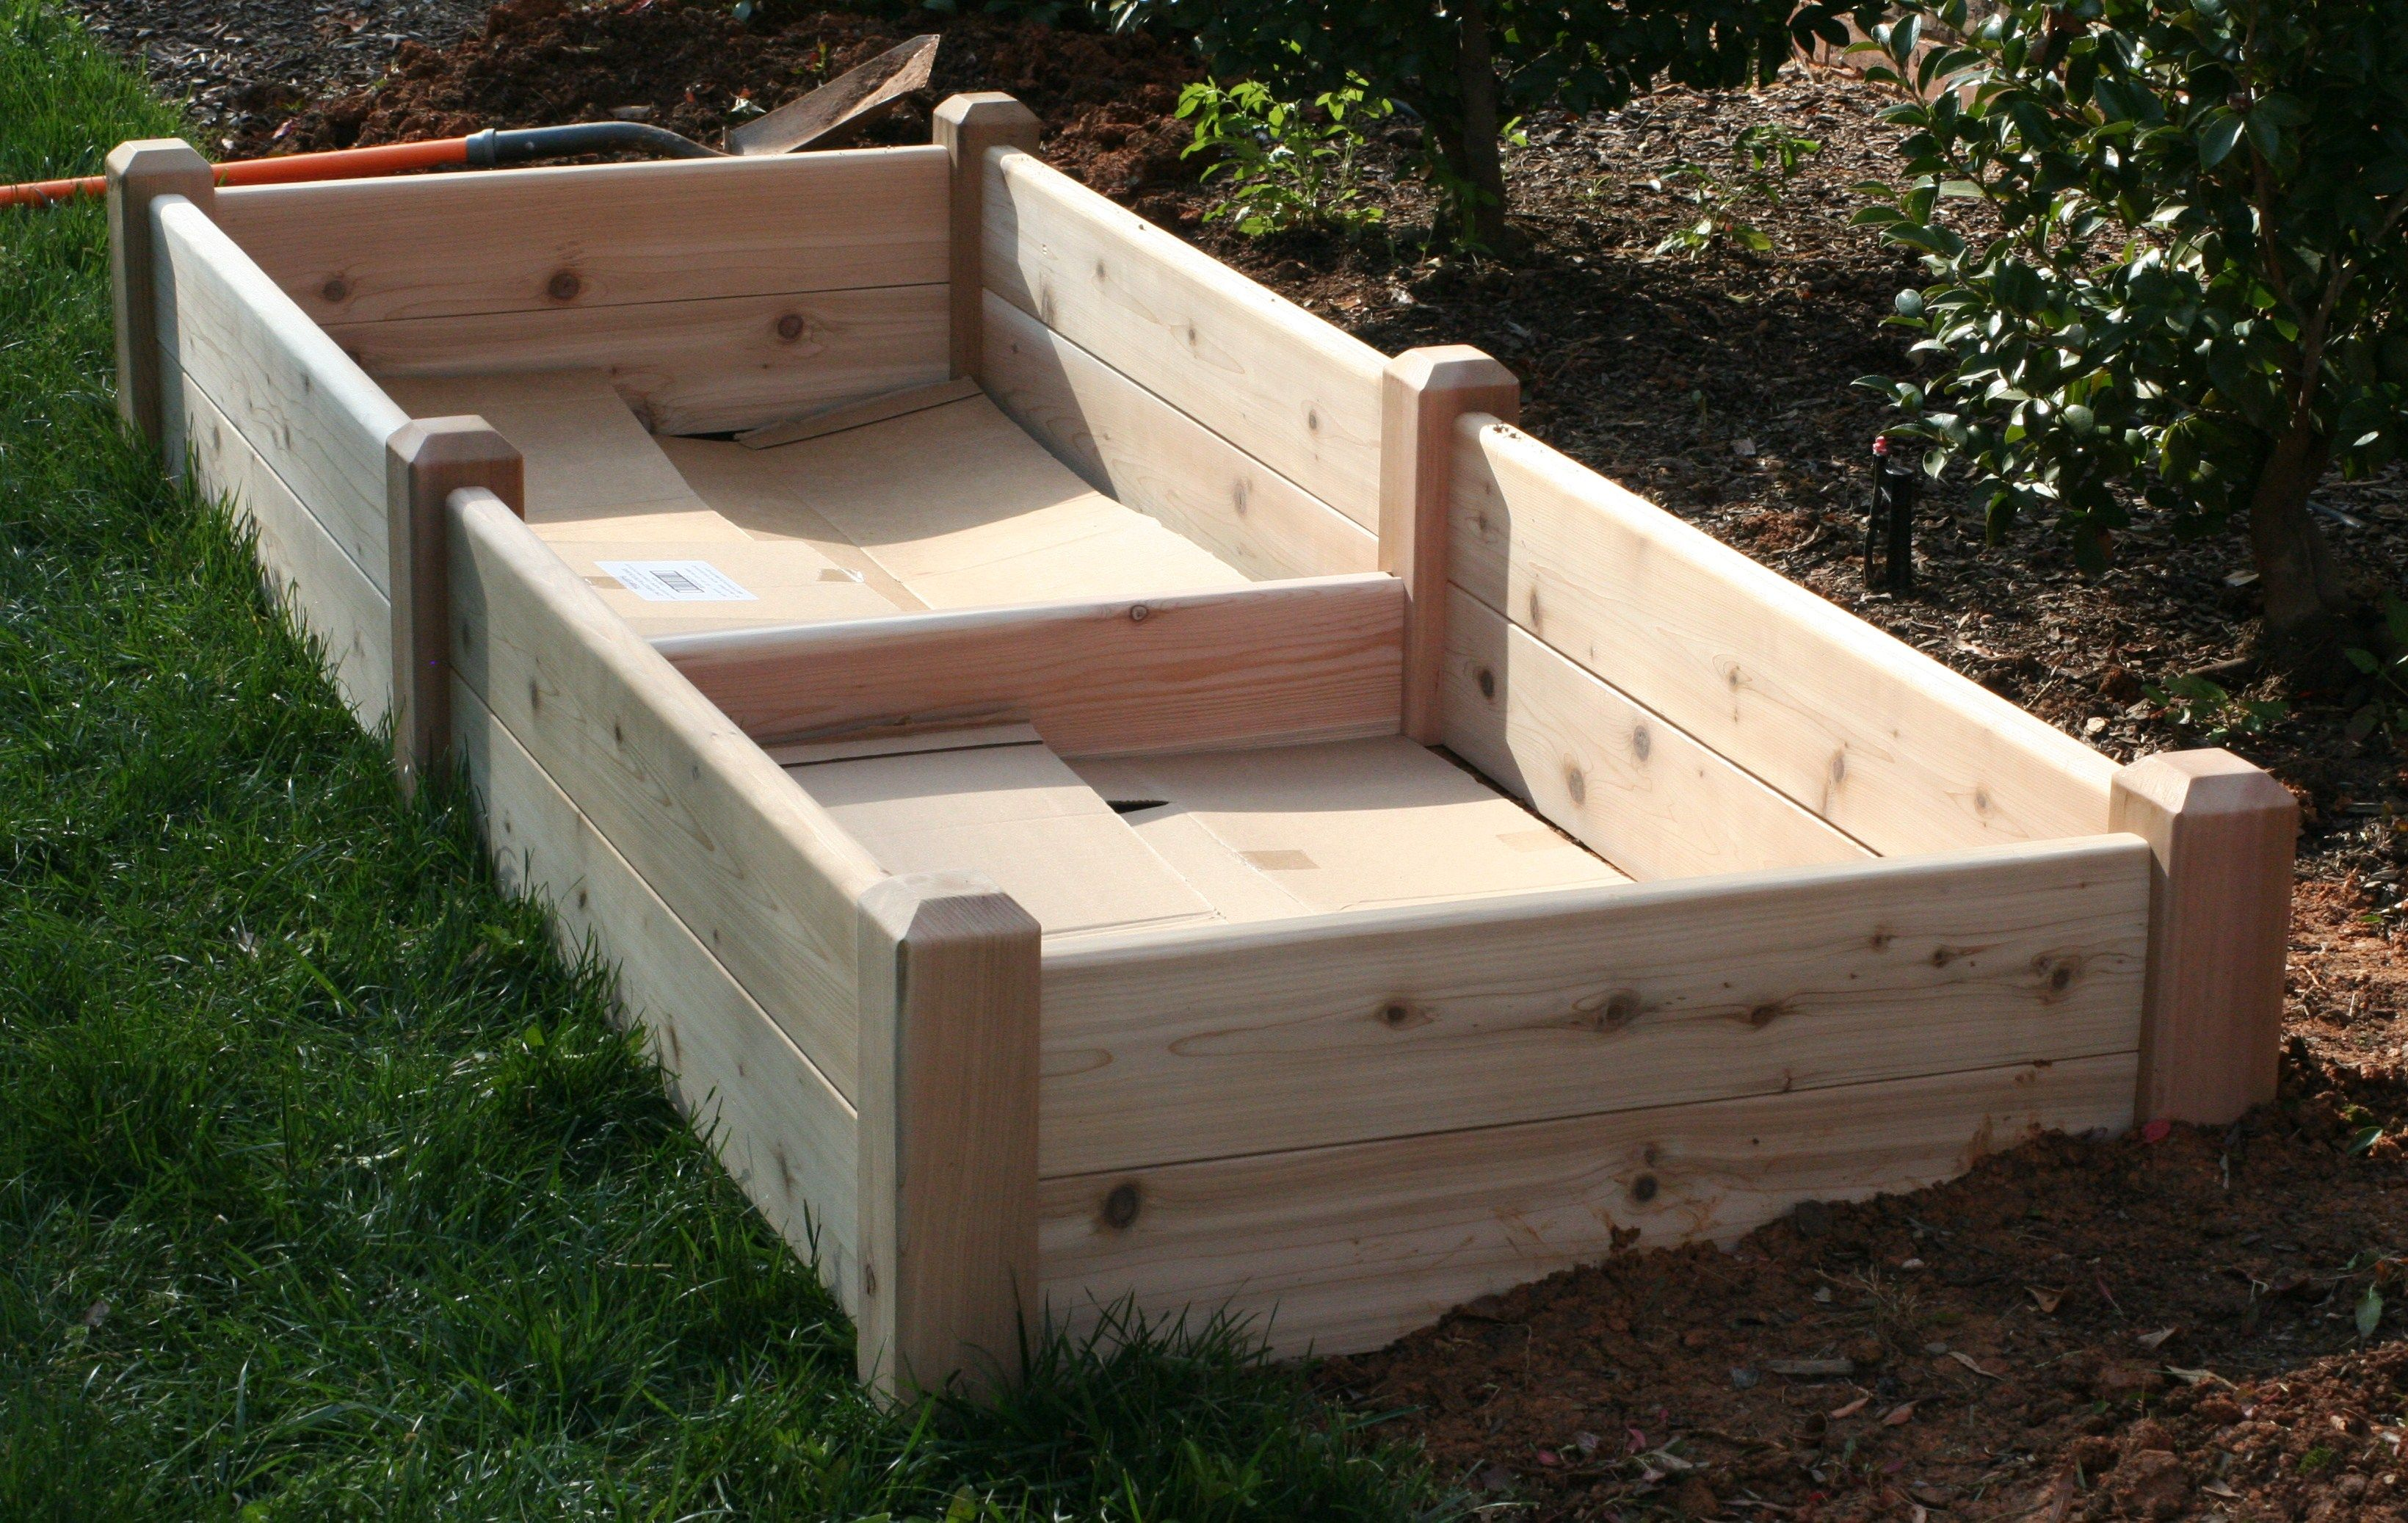 2' Carolina Garden Systems Raised Garden Beds Raised